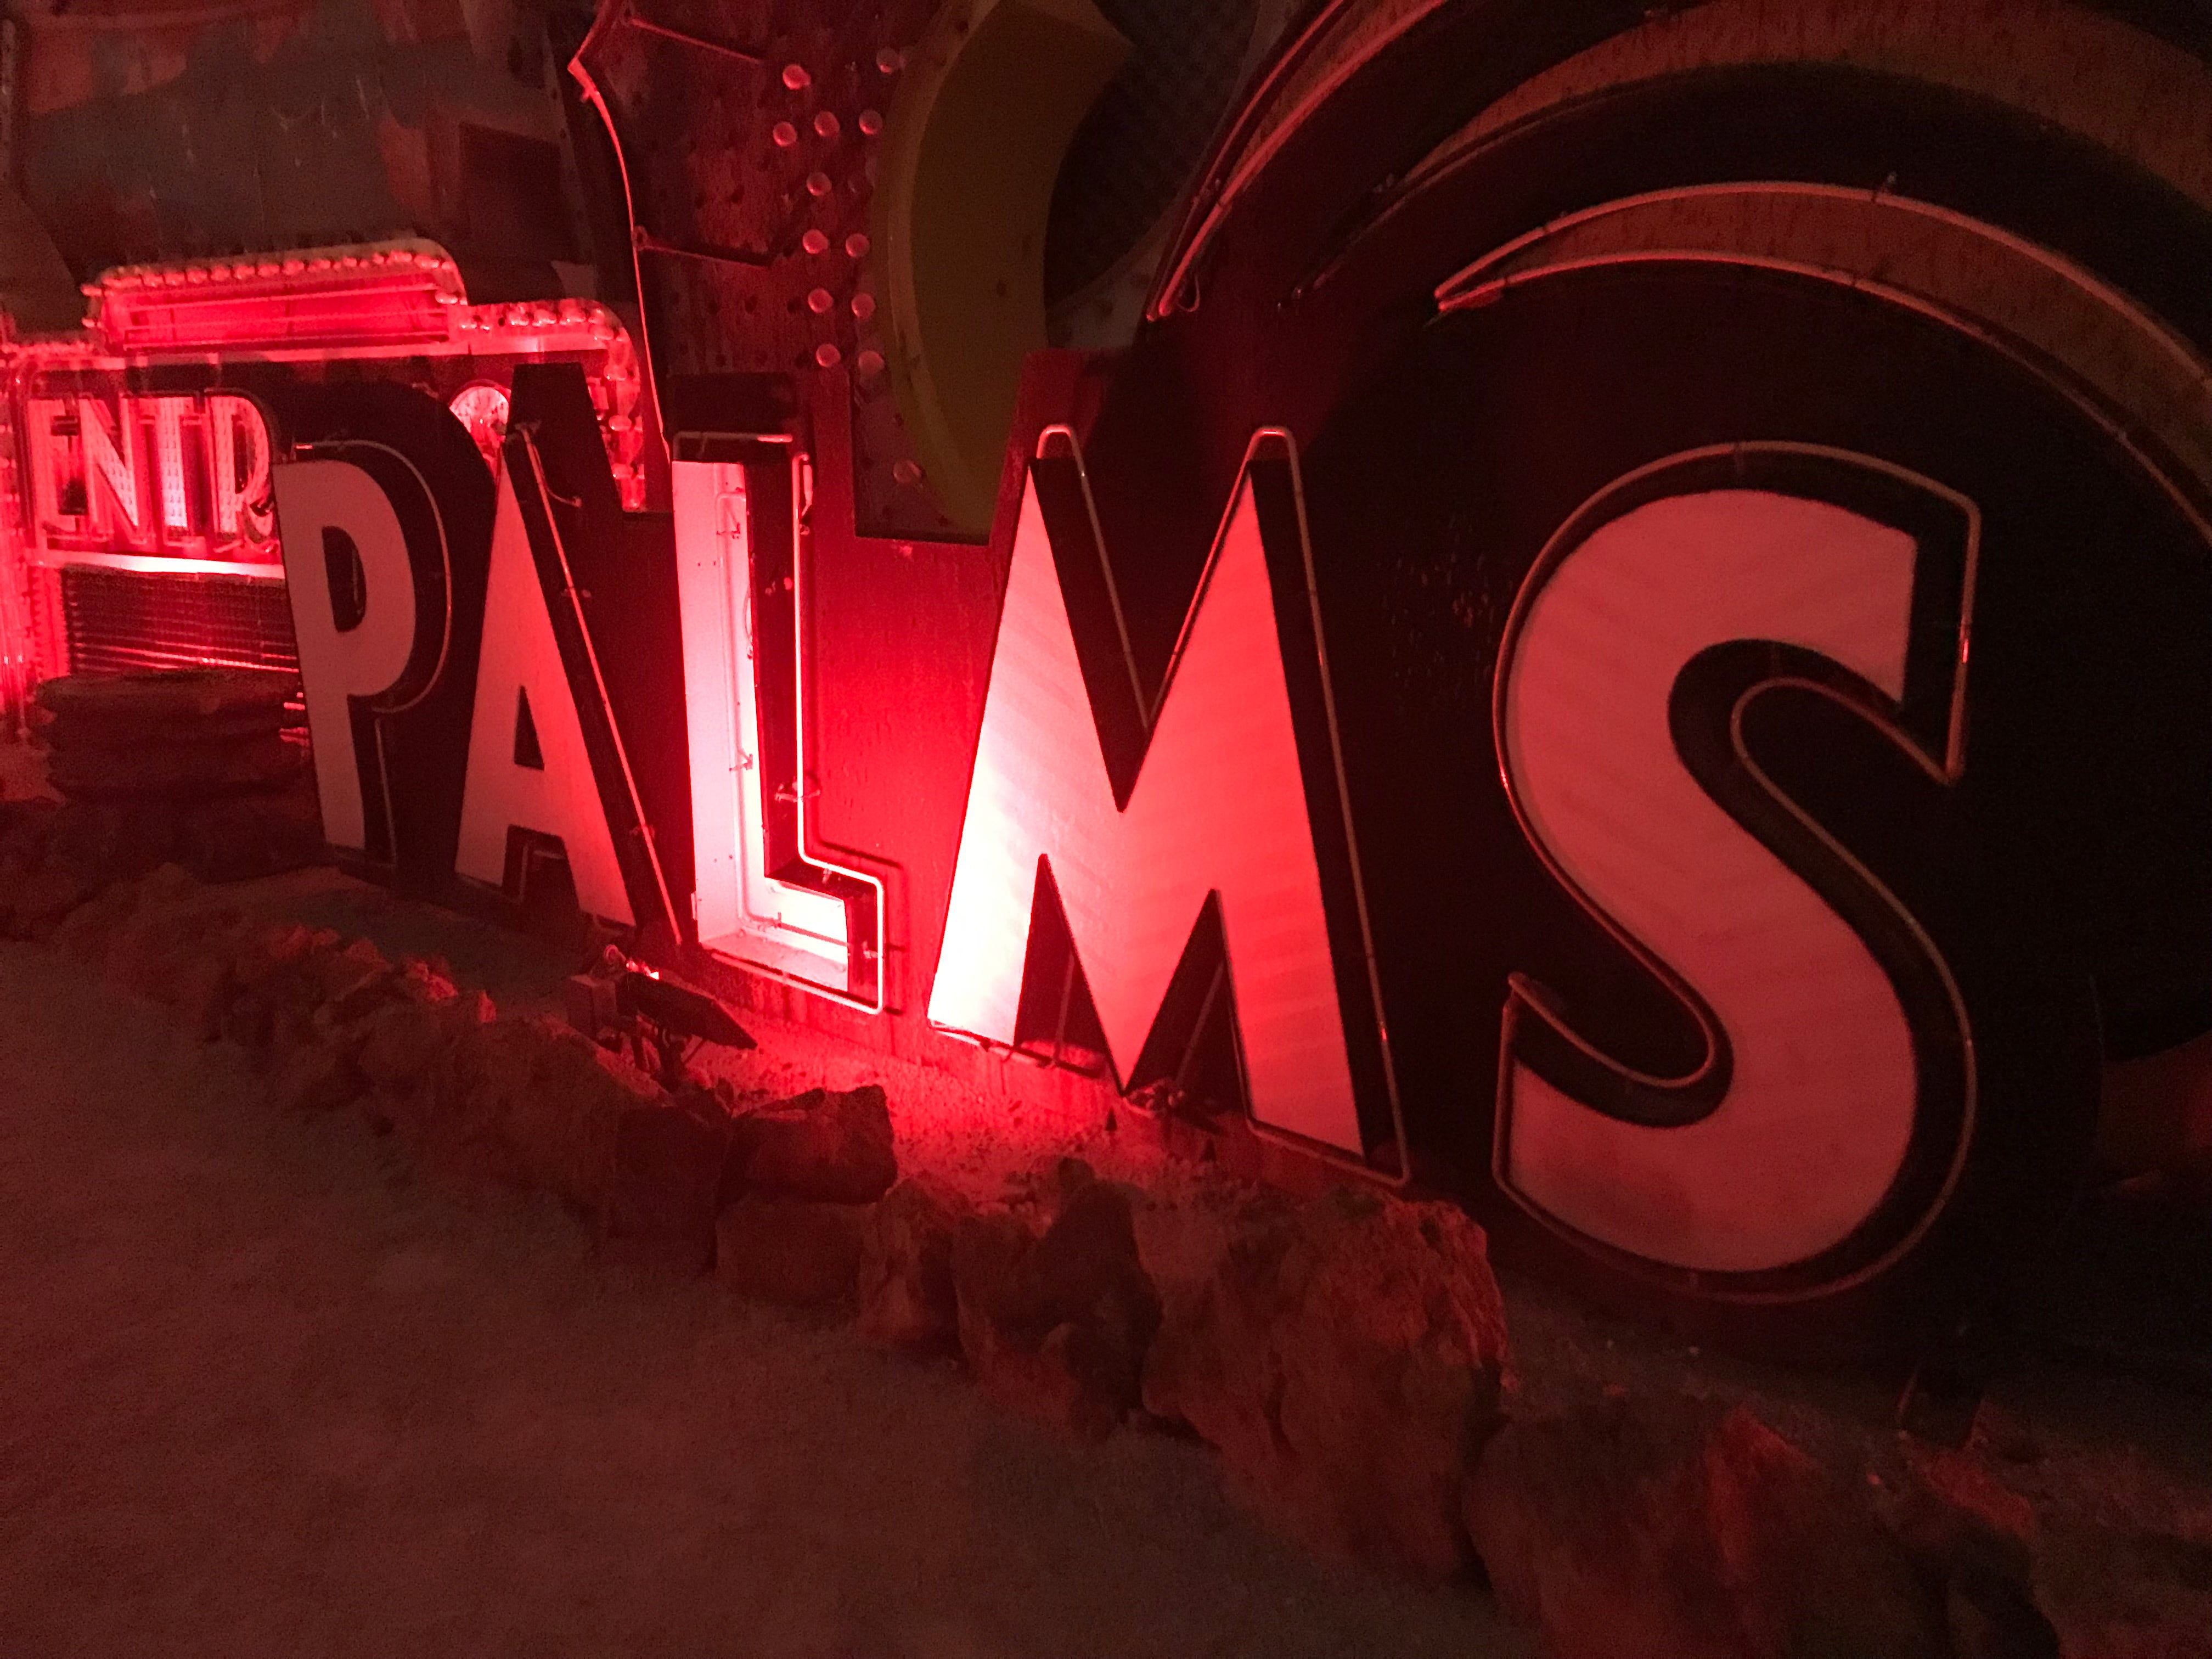 The Palms is still in business, but this sign is from an earlier era at the off-Strip casino hotel.